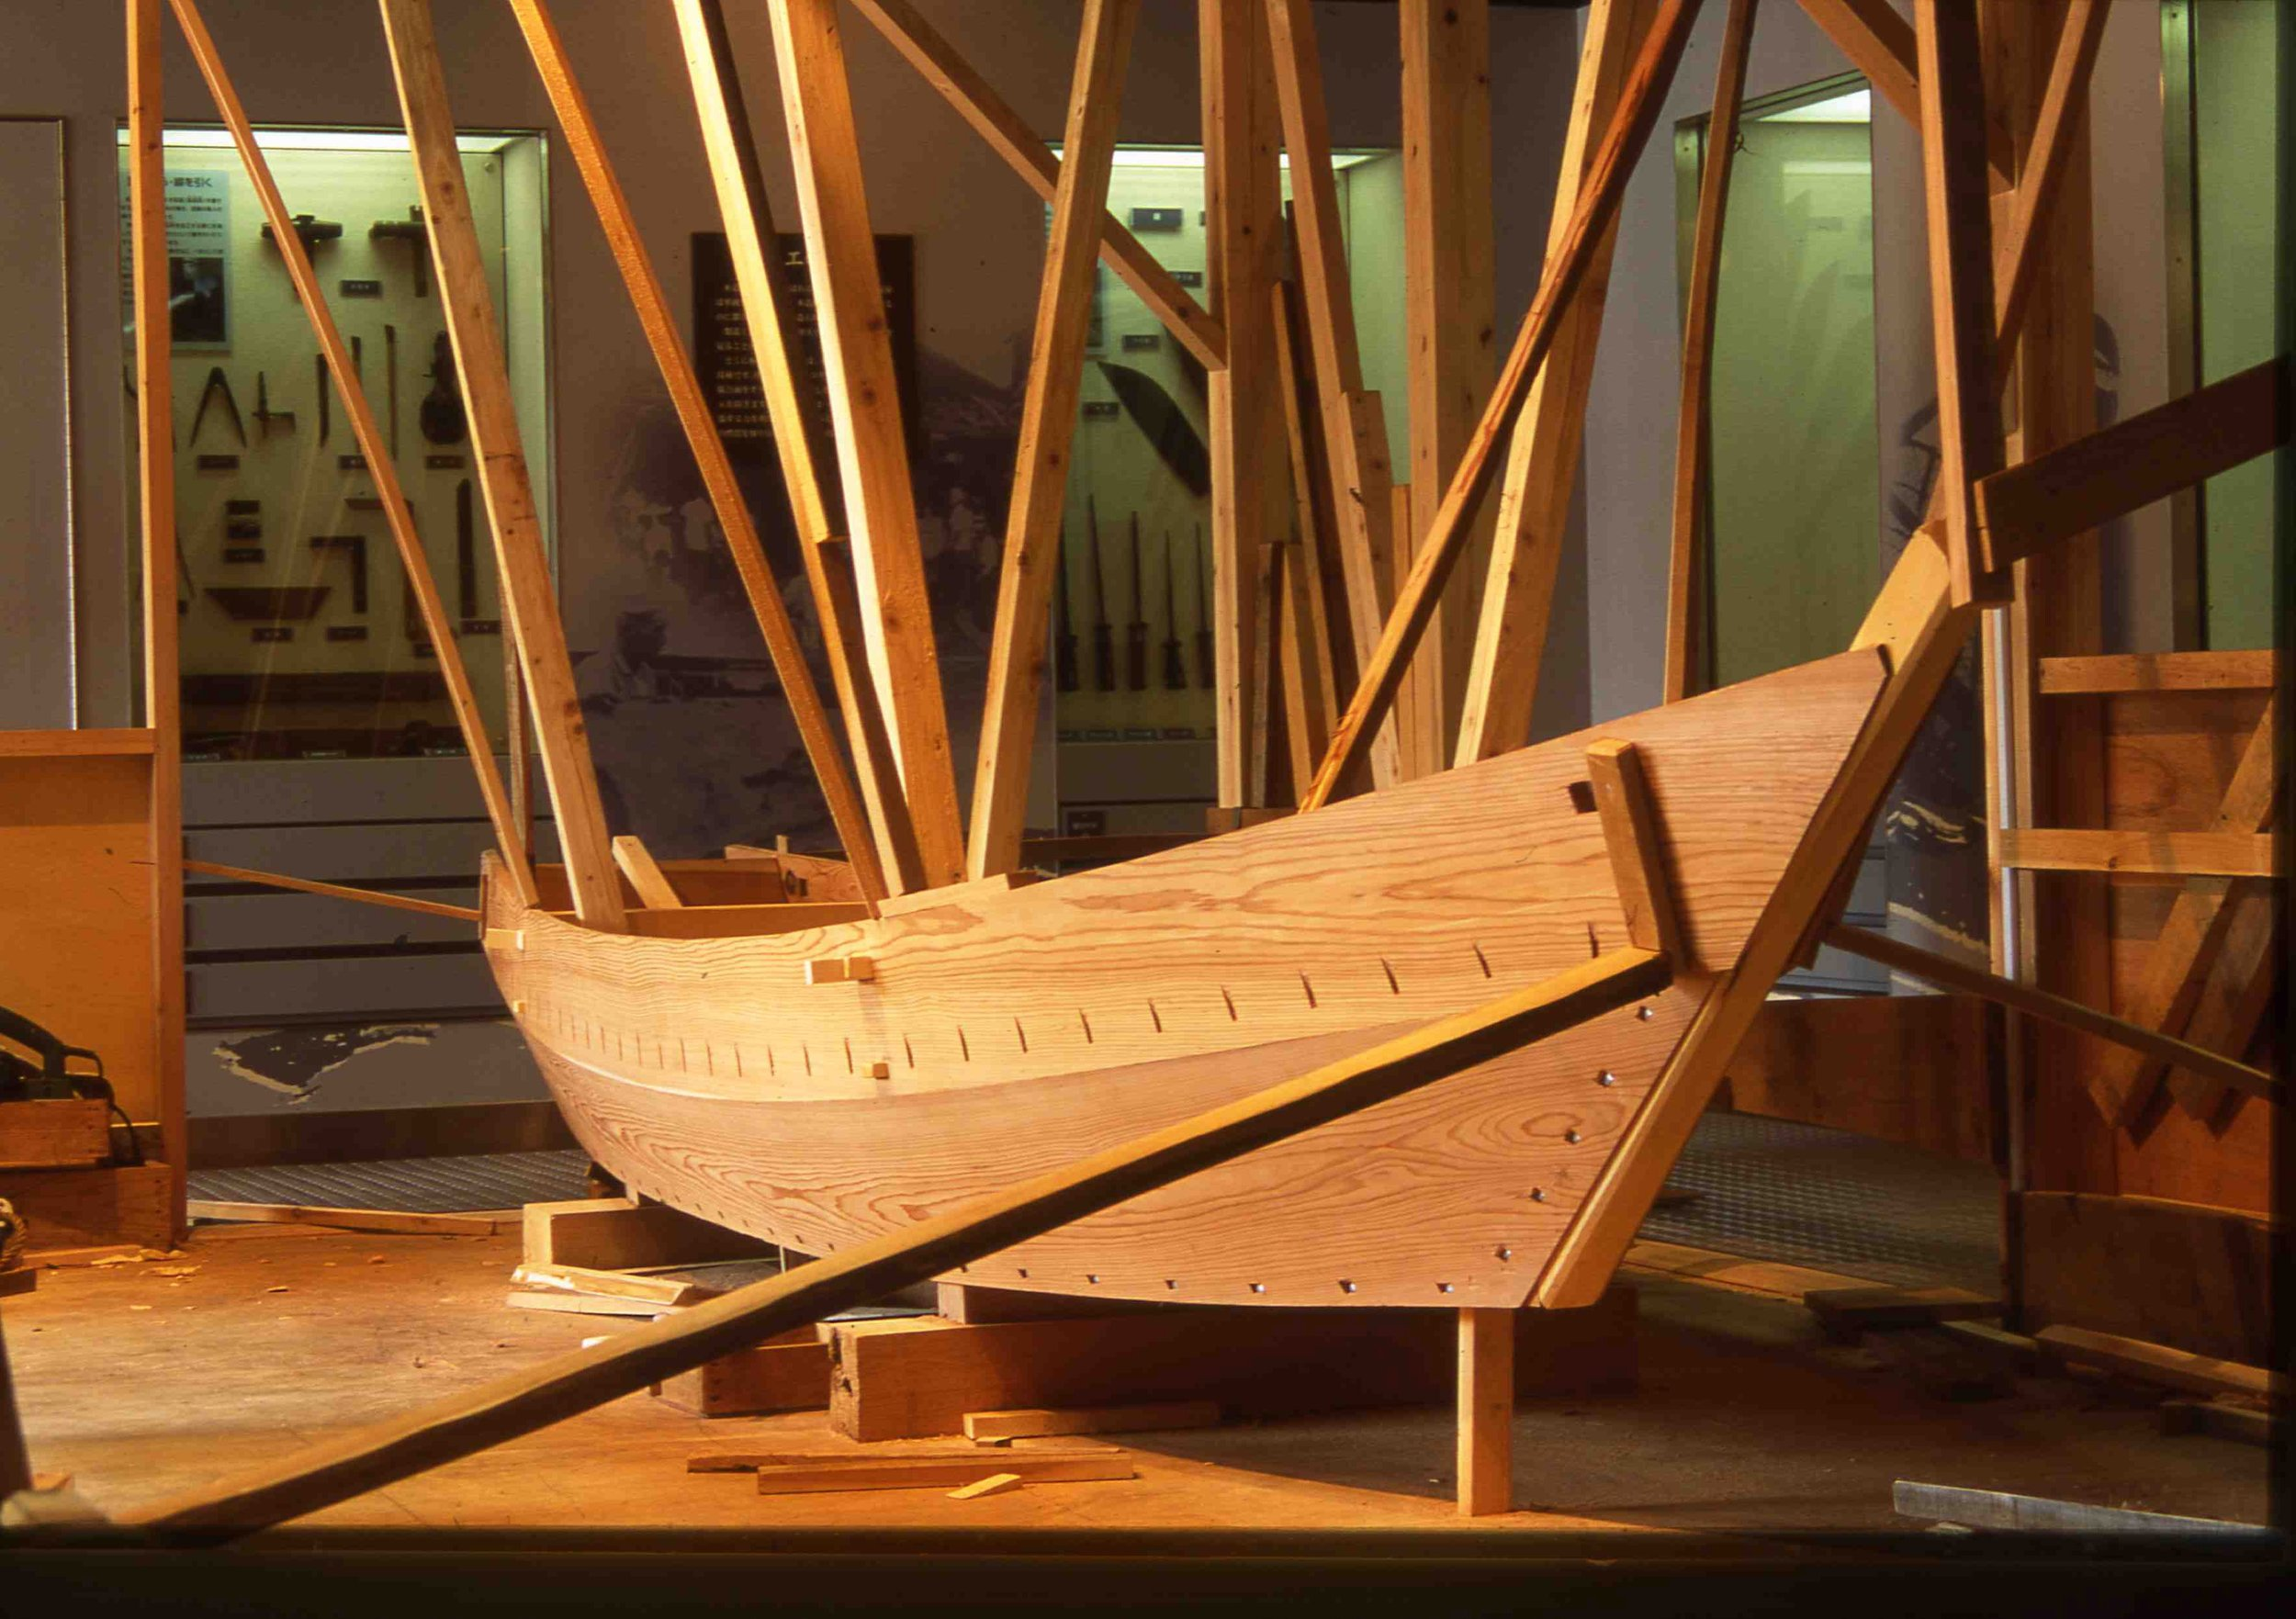 - Come join us for the start of our new lecture series! On February 28th at 6pm, Douglas Brooks, a boatbuilder, writer, and researcher who specializes in the construction of traditional wooden boats, will be giving a public lecture. He will talk about his experiences apprenticing with some of the last Japanese boatbuilders to learn their traditional craft and he'll have copies of his new book available for purchase. To see photos of his boats and learn more about his research, you can visit his website.The lecture costs $10. You can buy tickets at the door or purchase them here on the website.Us lucky apprentices will also get to participate in a demo the following day. More to come on that in a future post.Photo Credit: Douglas Brooks